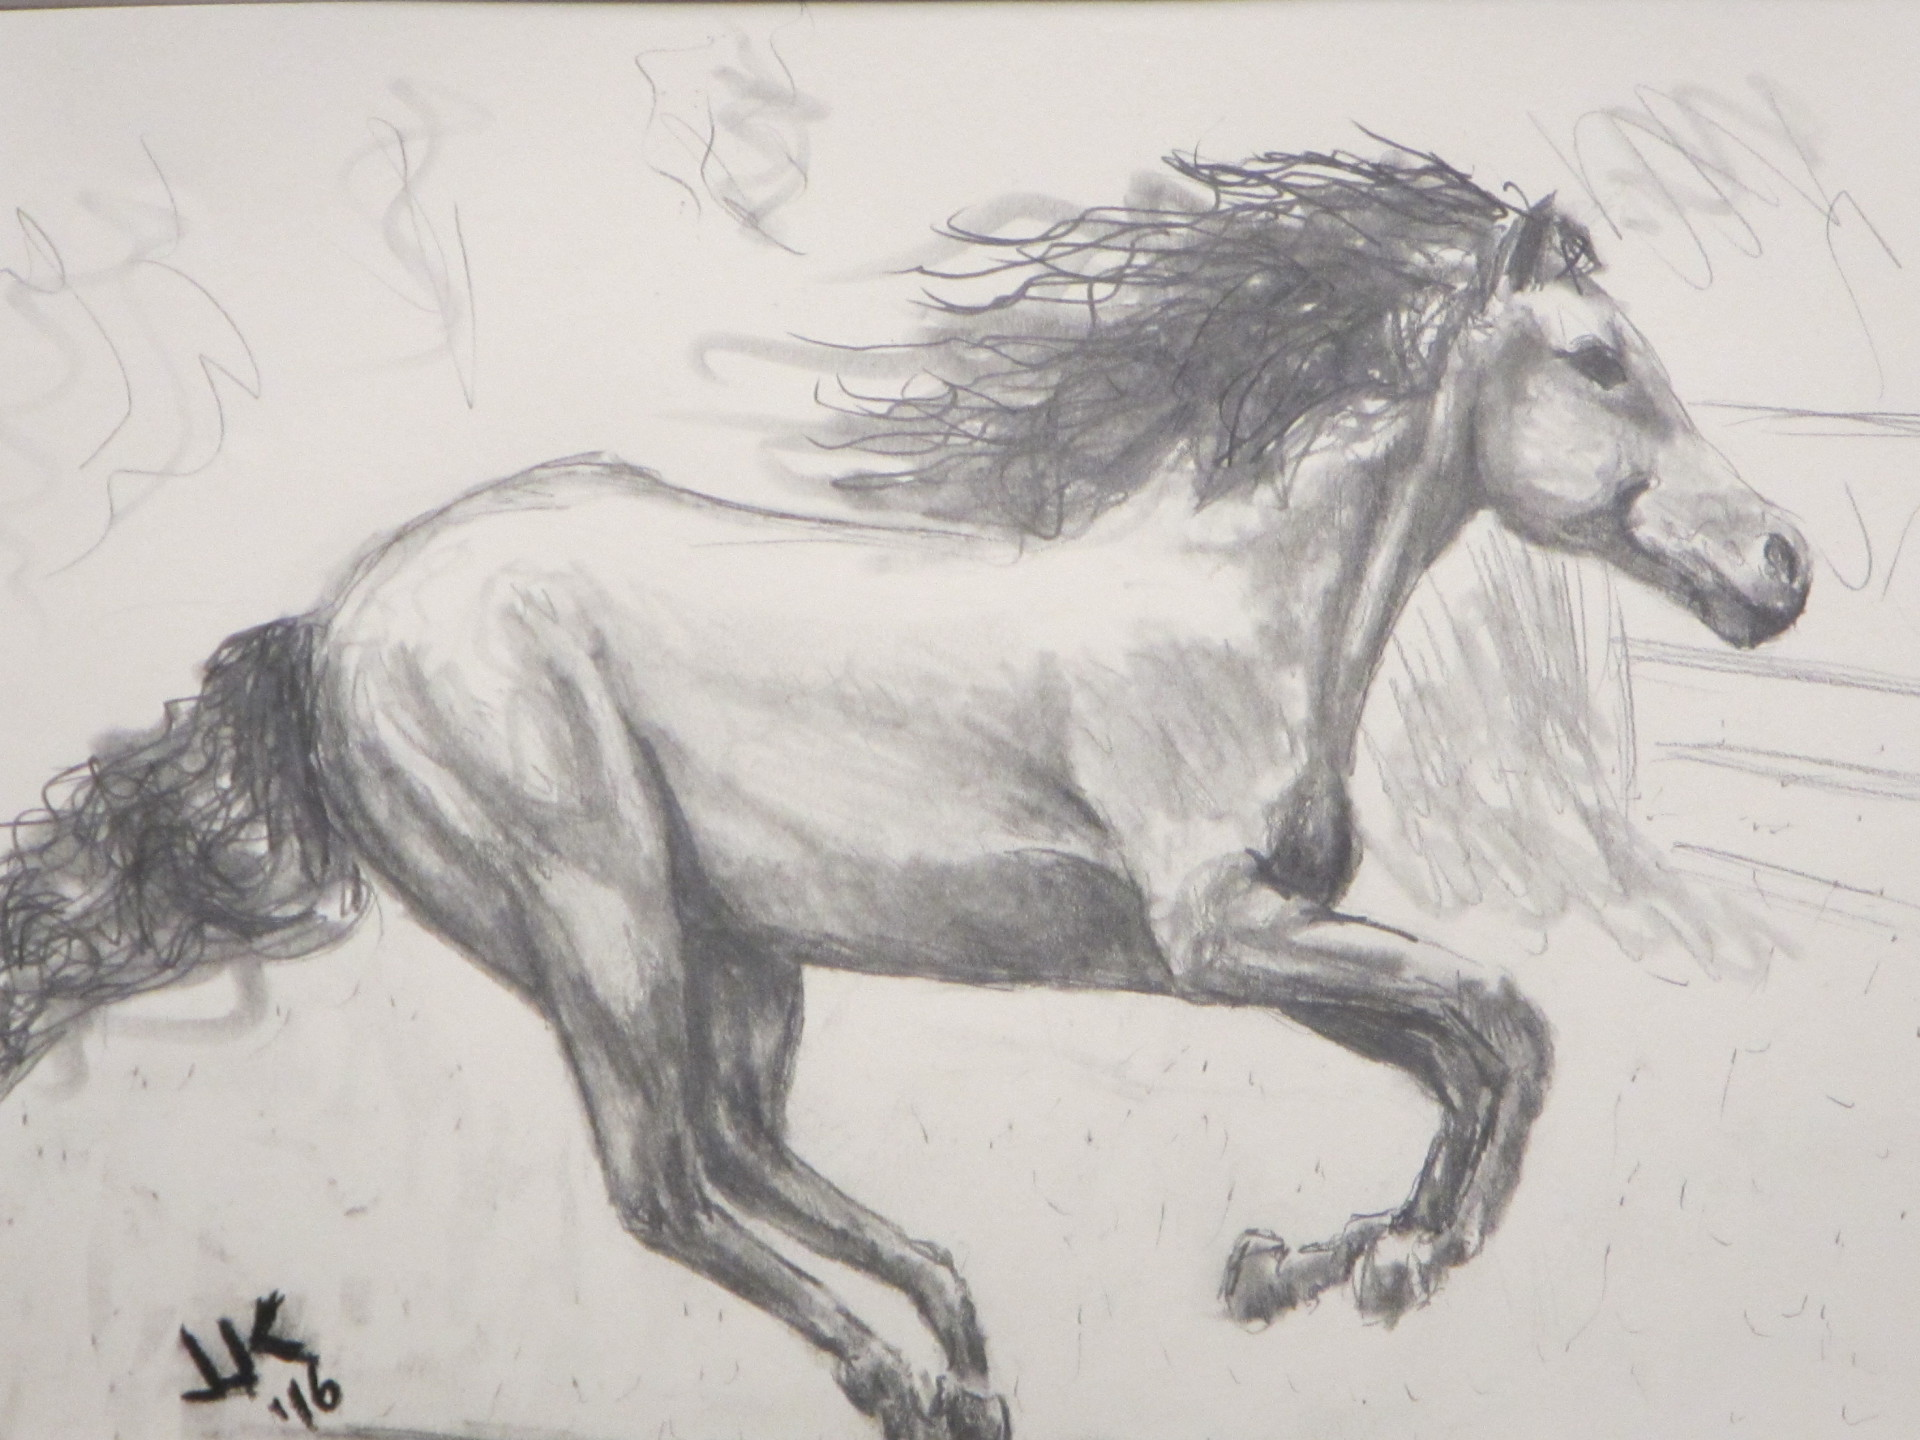 Pencil drawing of a horse in full gallop.